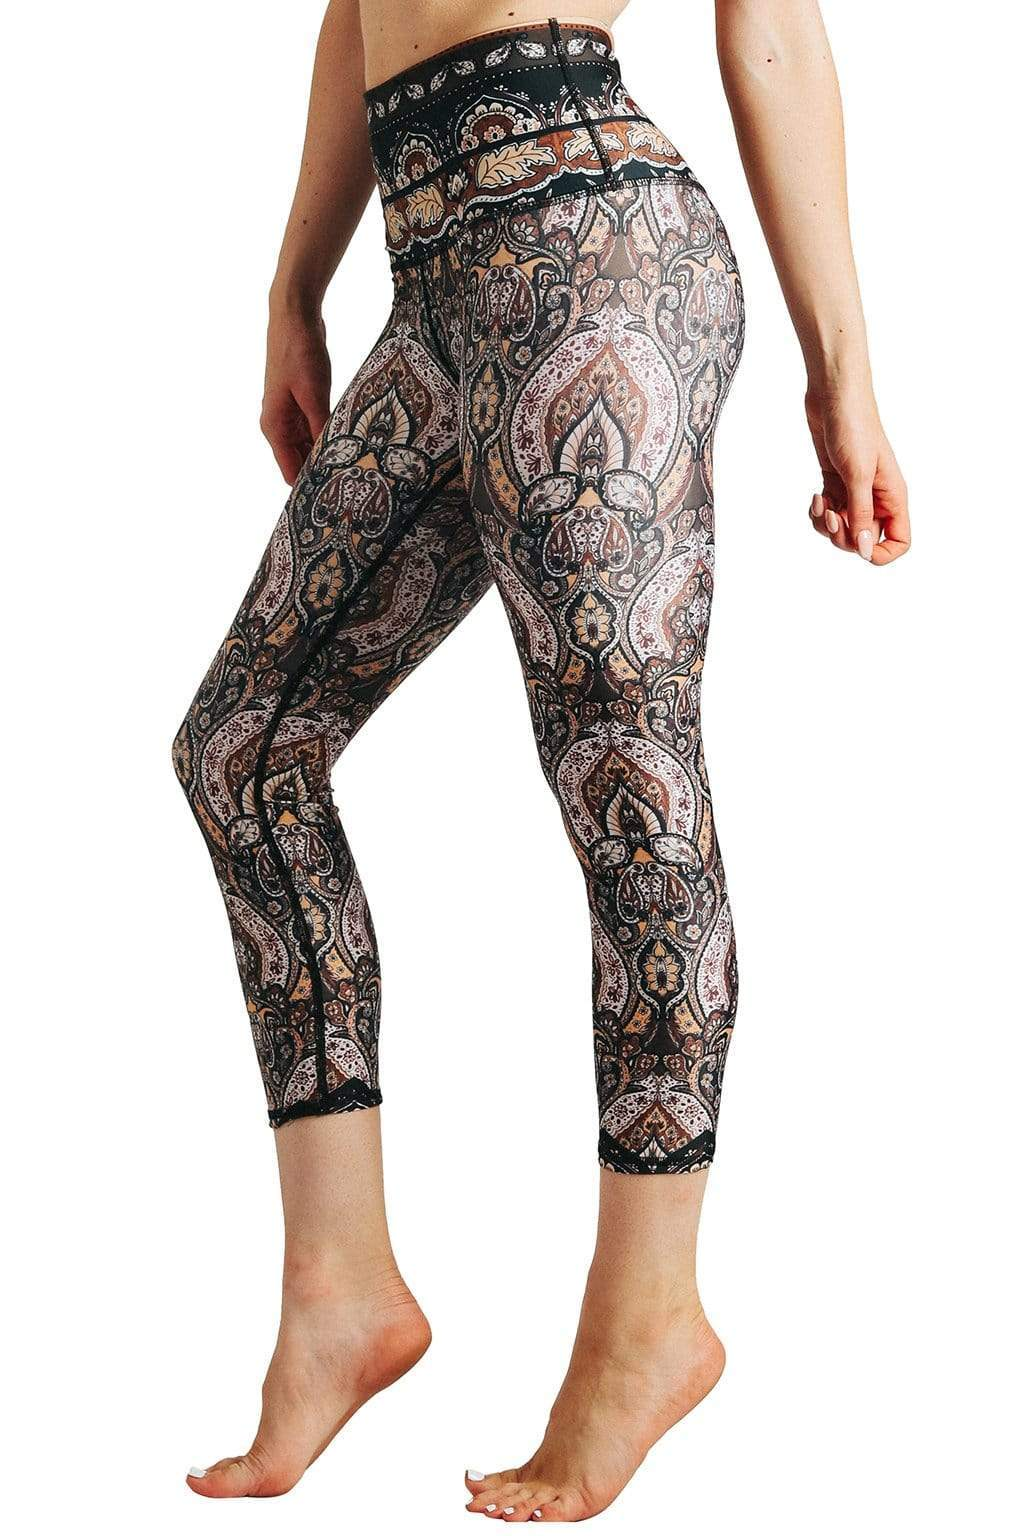 Yoga Democracy Leggings Espresso Yourself Printed Yoga Crops